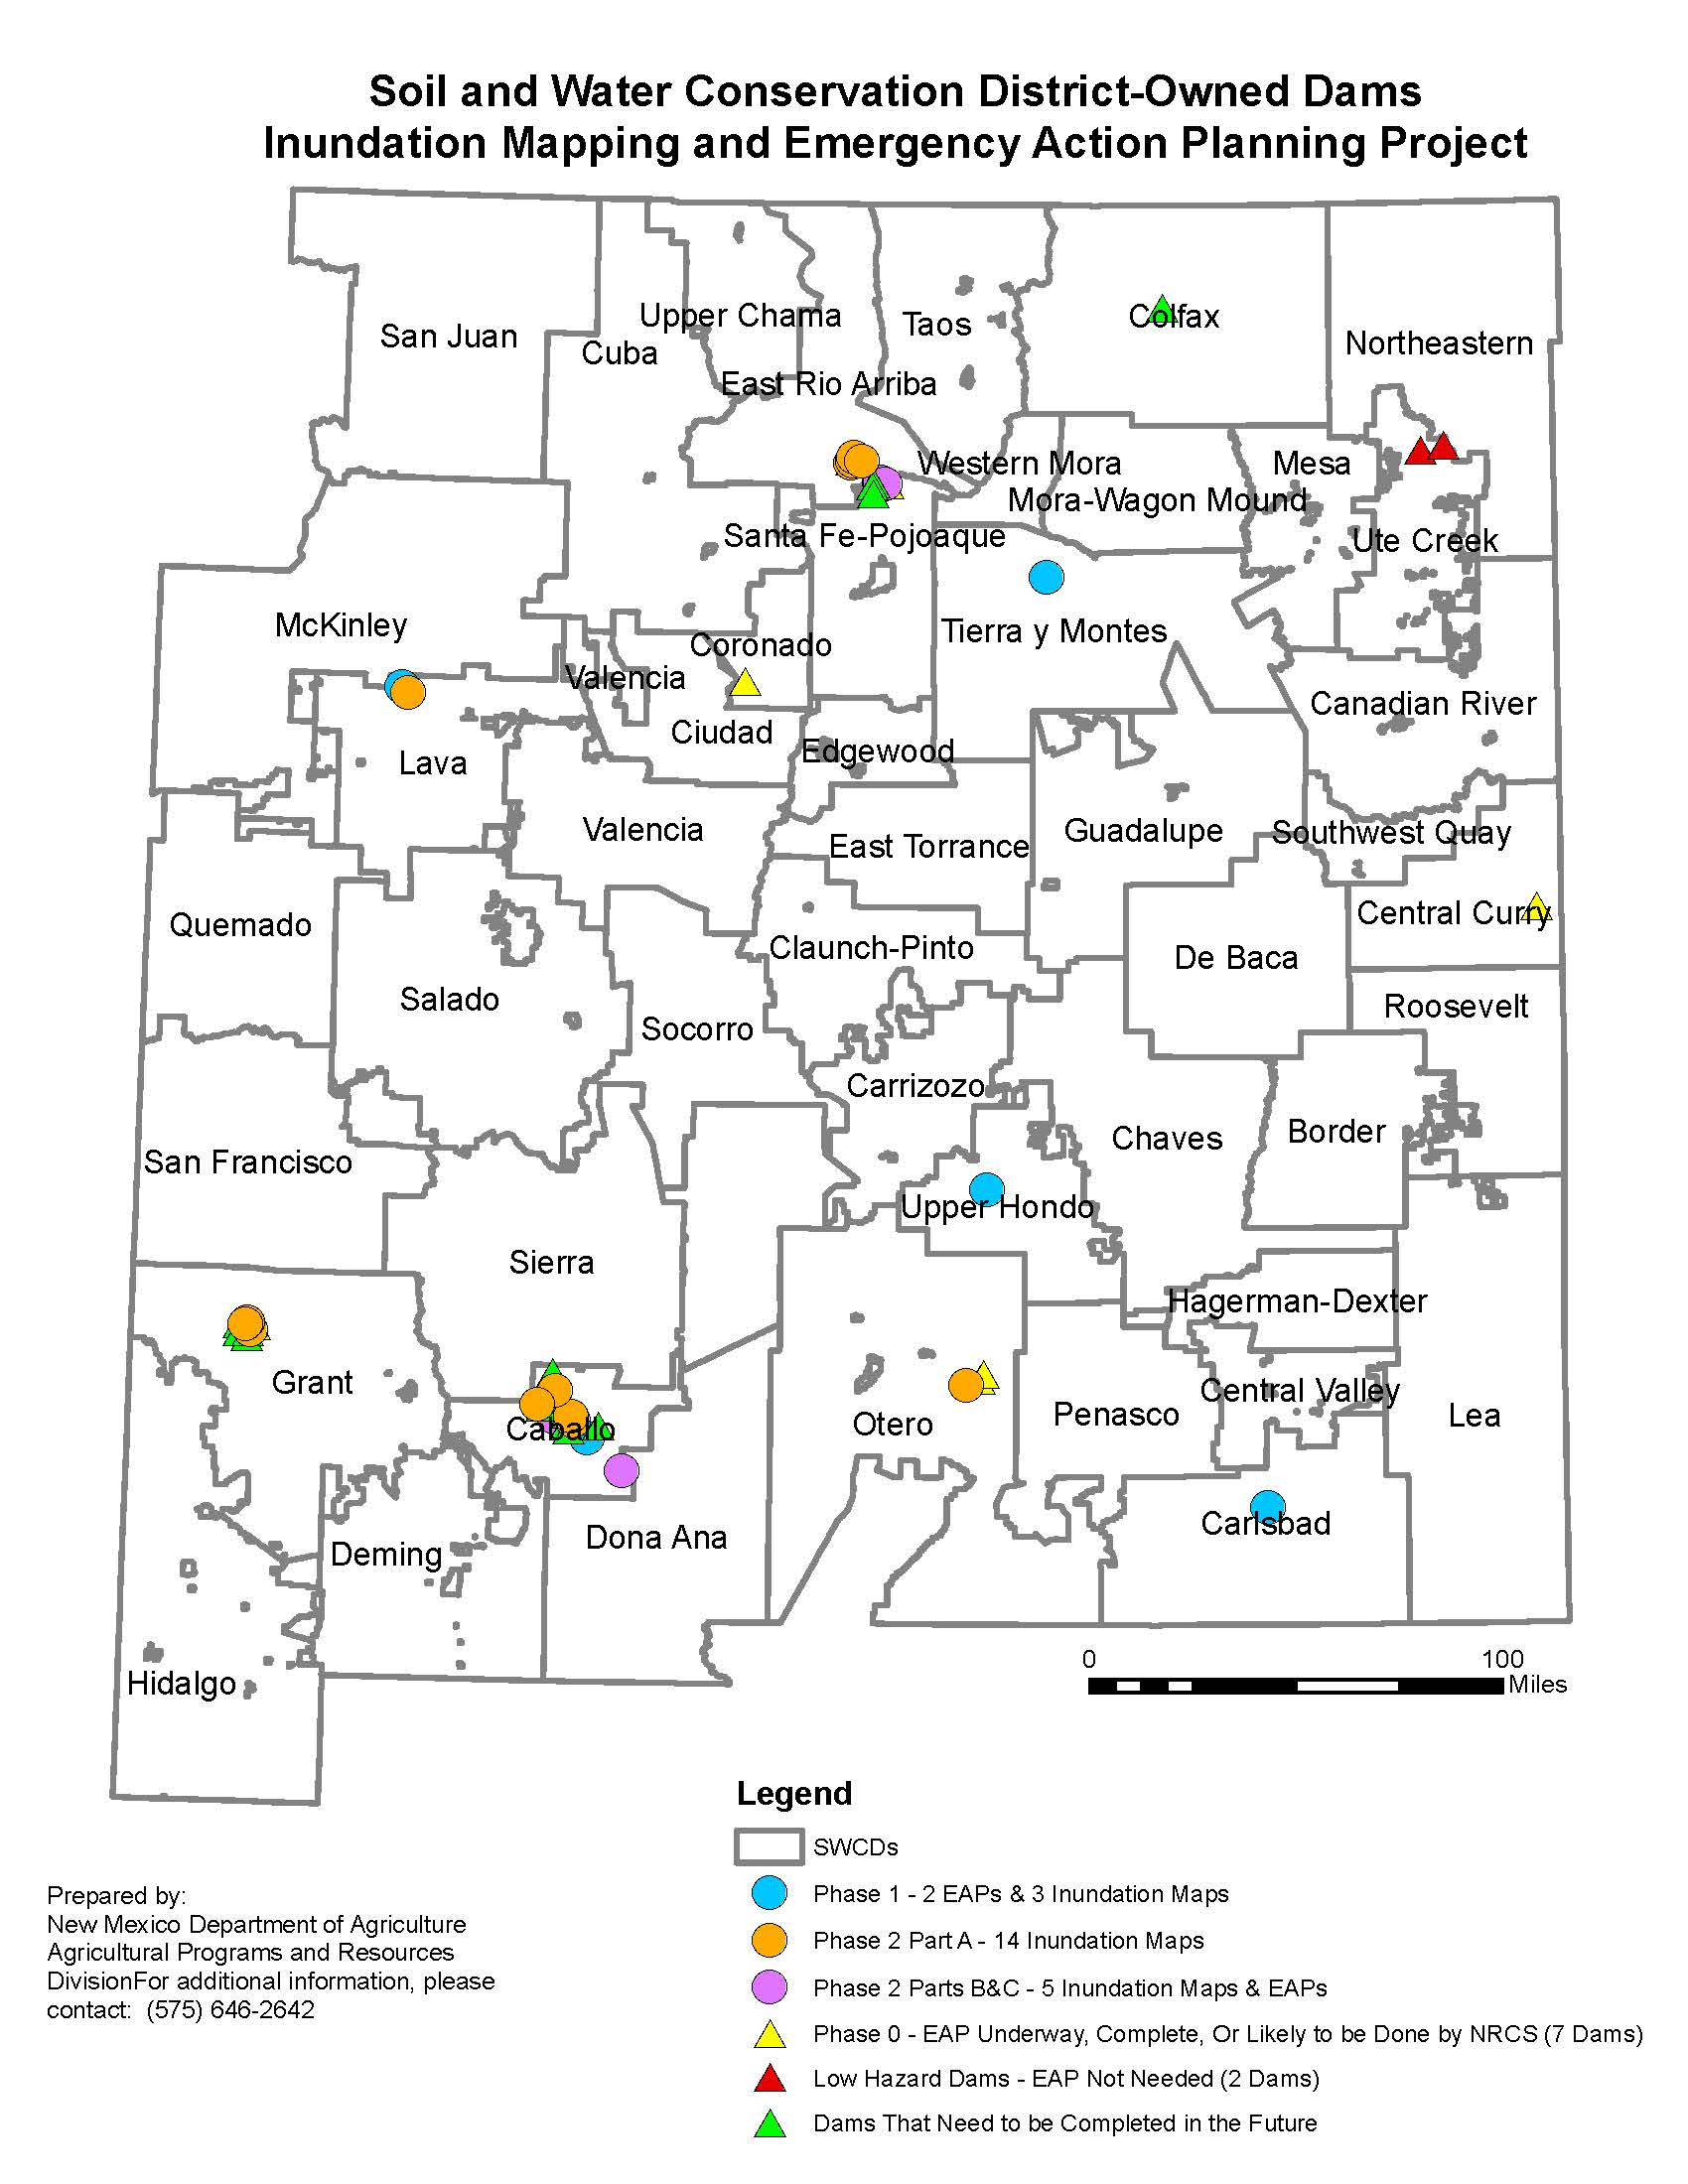 The New Mexico Department of Agriculture has been selected to receive the West Regional Award by the Association of State Dam Safety Officials (ASDSO) for the completion of the Soil and Water Conservation District-Owned Dams Inundation Mapping and Emergency Action Planning Project. The project provided a total of 24 Inundation Maps and 13 EAPs to Soil and Water Conservation and Watershed Districts across the state.